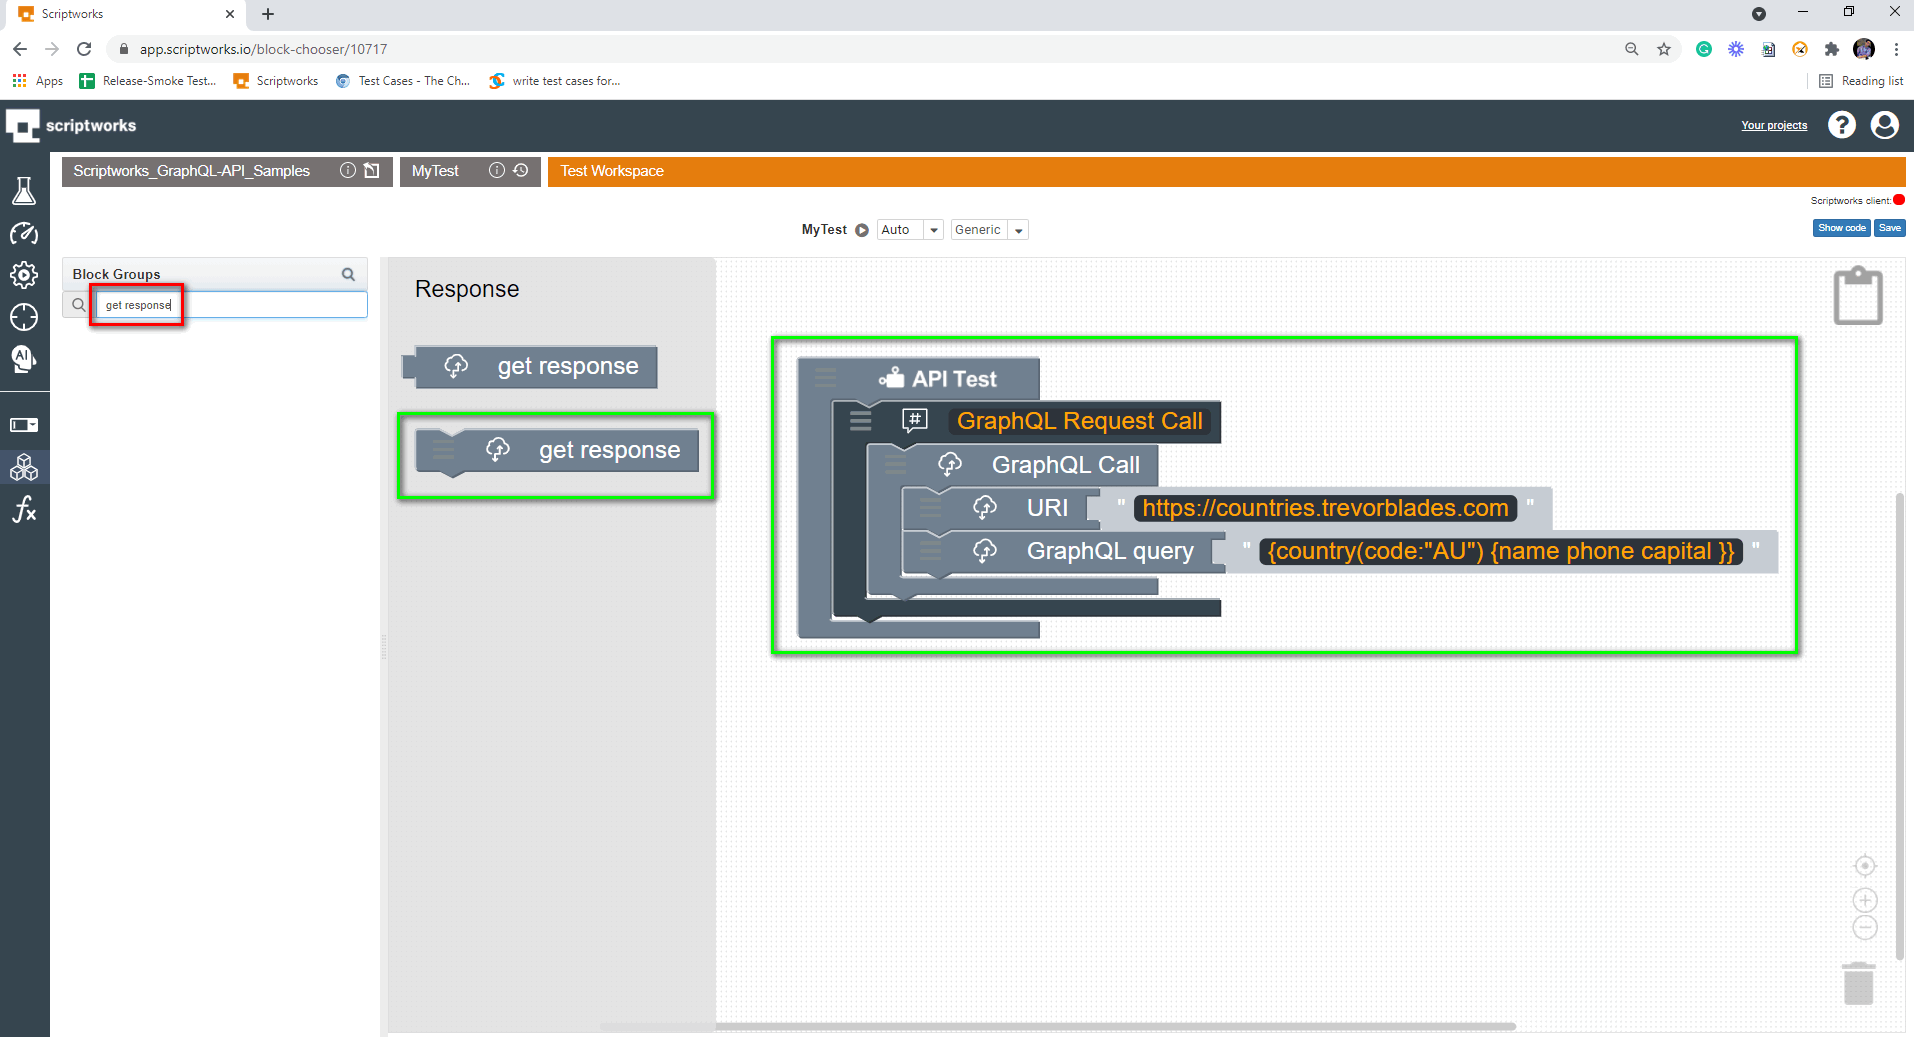 Get Response search made on left side panel